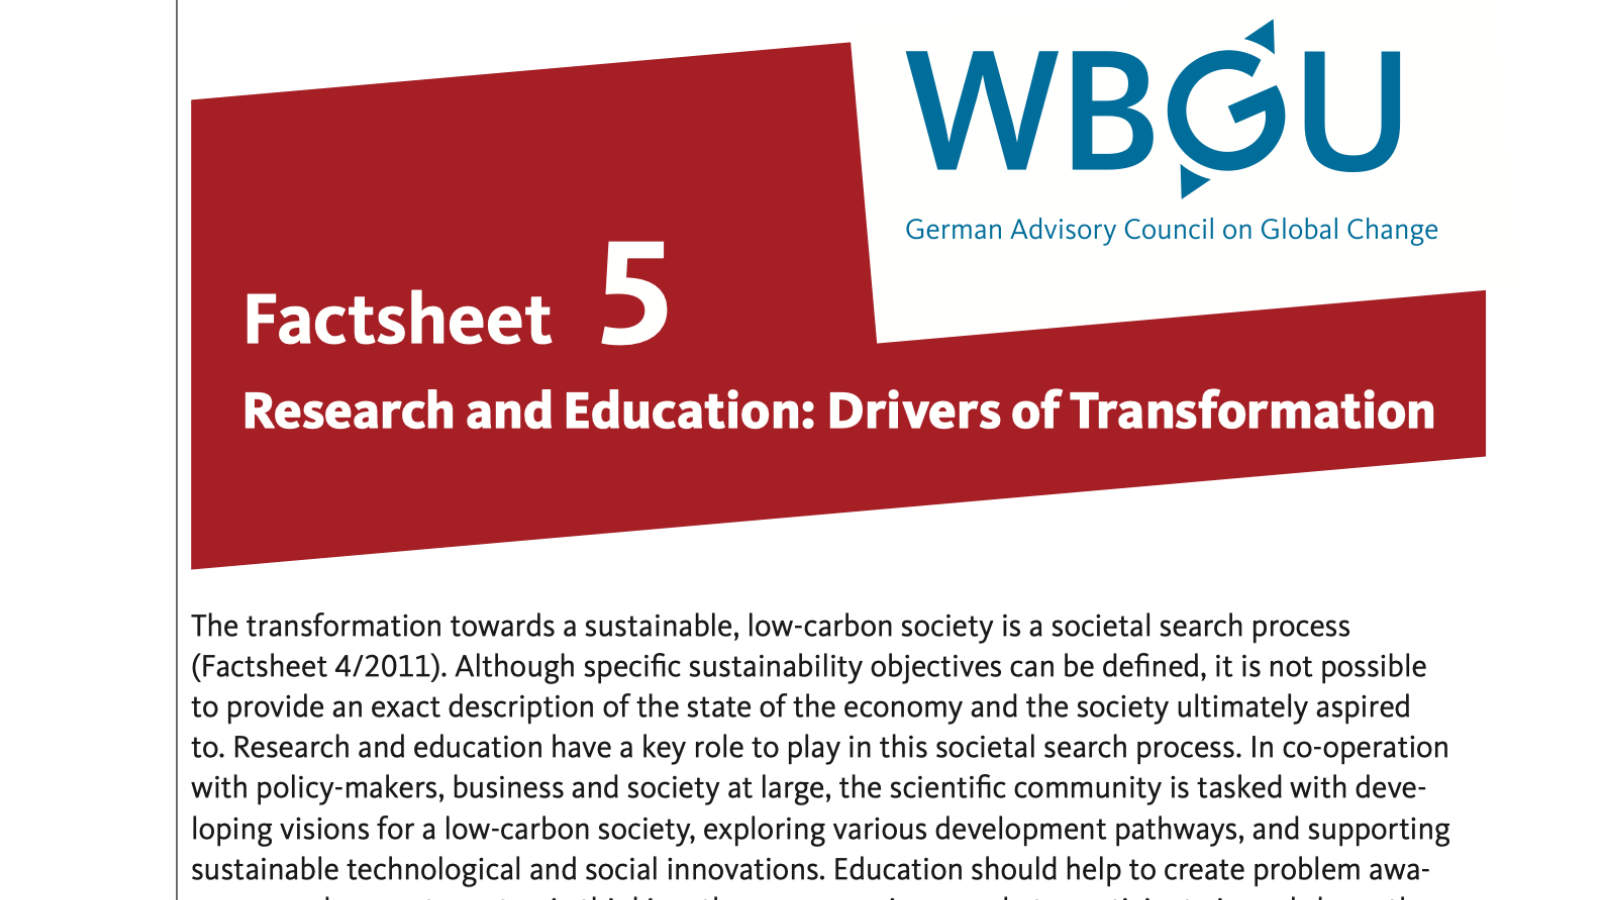 Factsheet: Research and Education - Drivers of Transformation